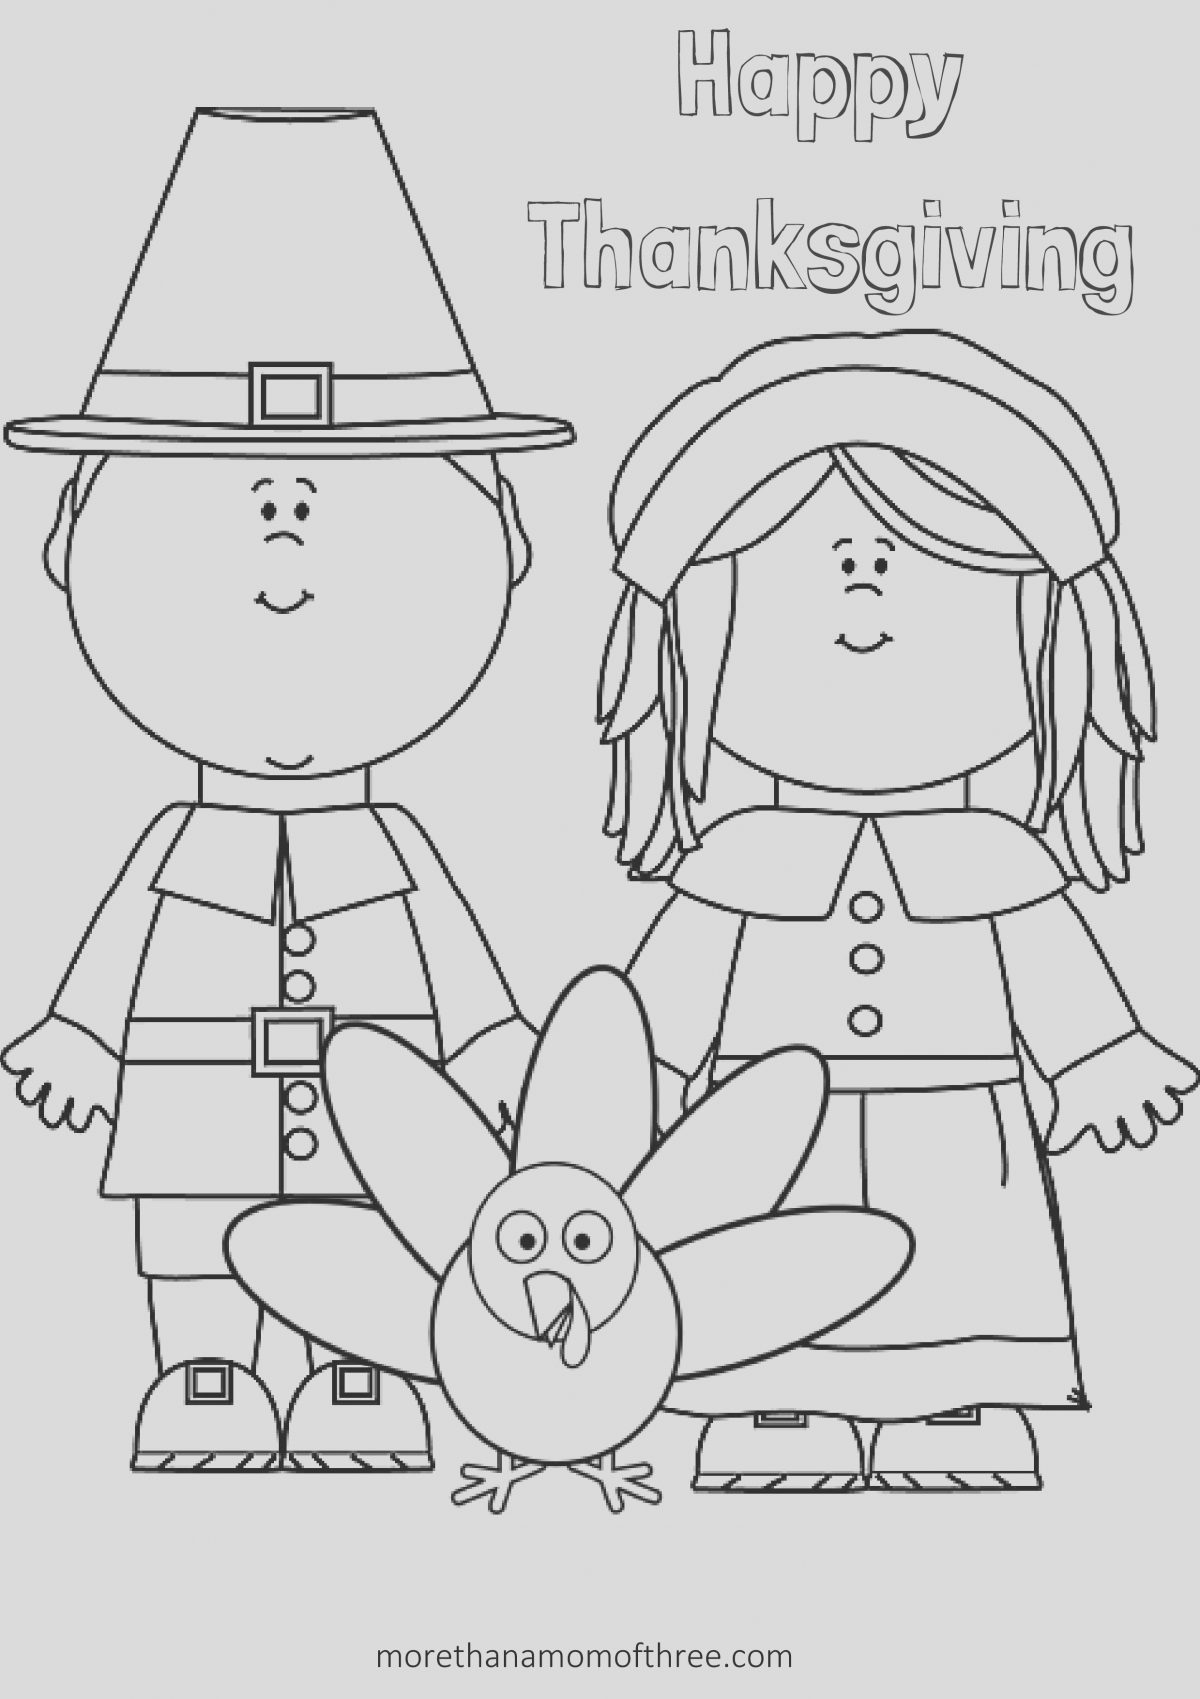 Thanksgiving Printable Coloring Page Lovely Free Thanksgiving Coloring Pages Printables for Kids